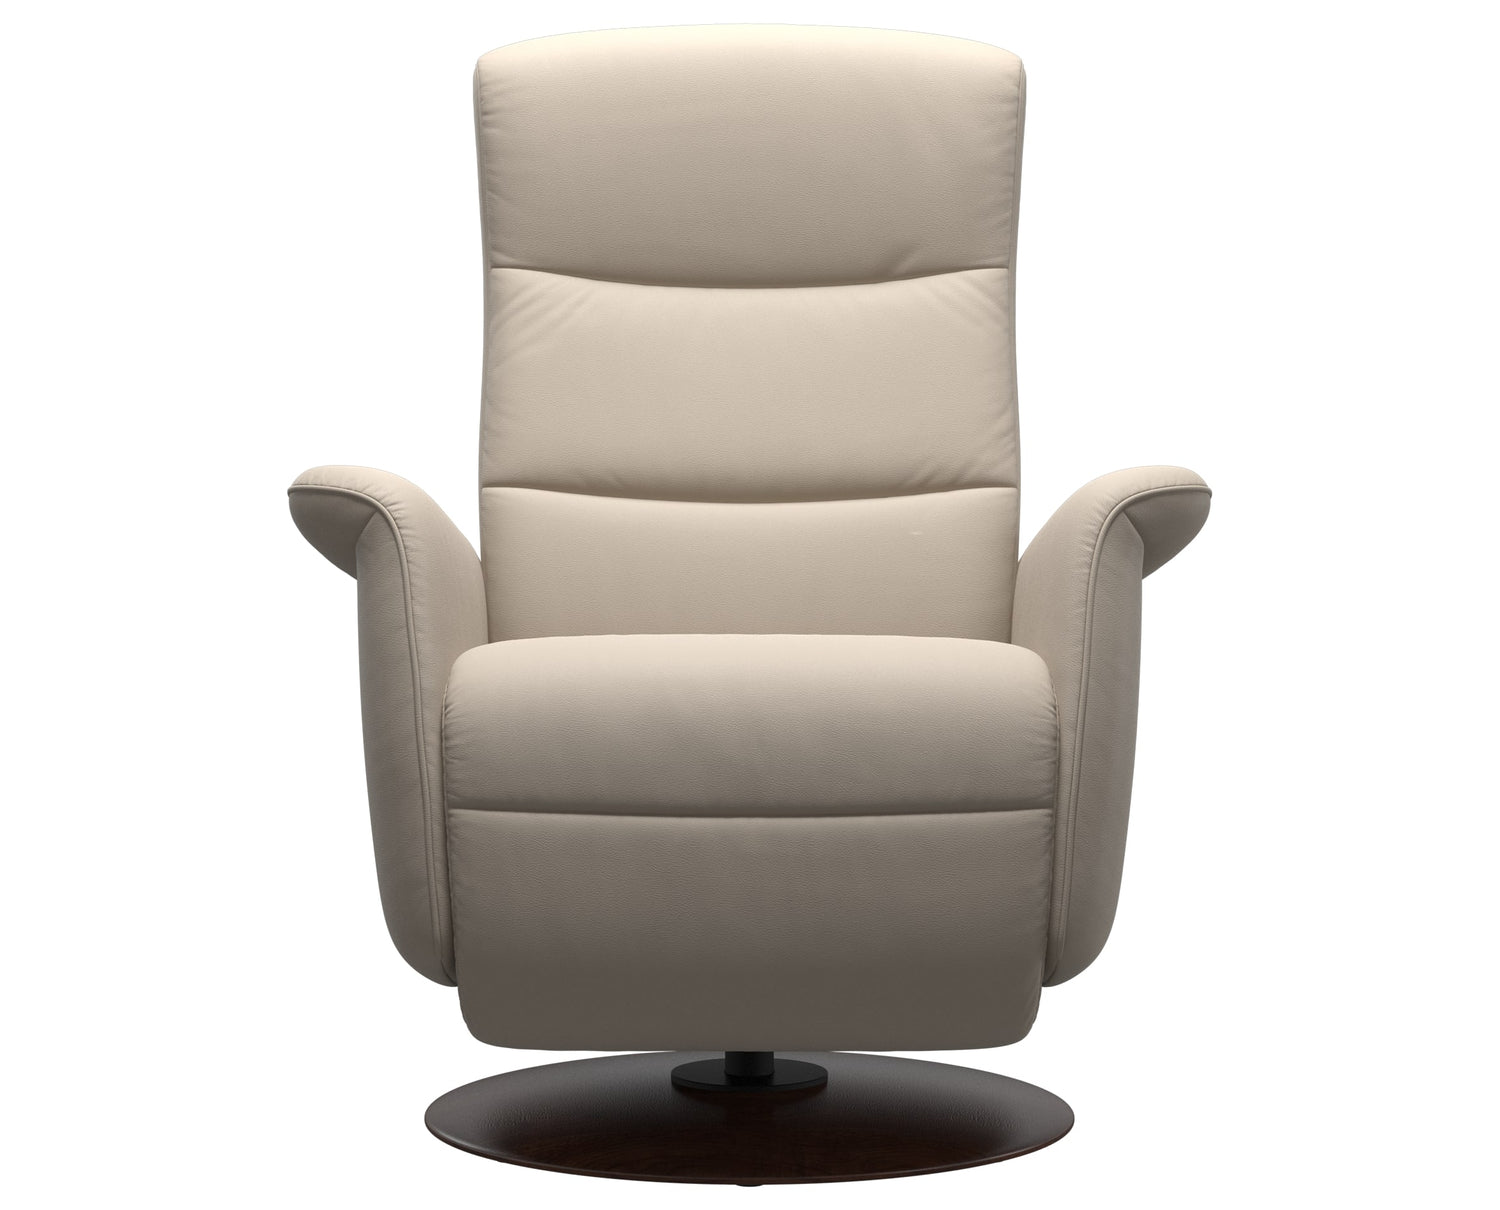 Paloma Leather Fog S/M/L & Brown Base | Stressless Mike Recliner | Valley Ridge Furniture